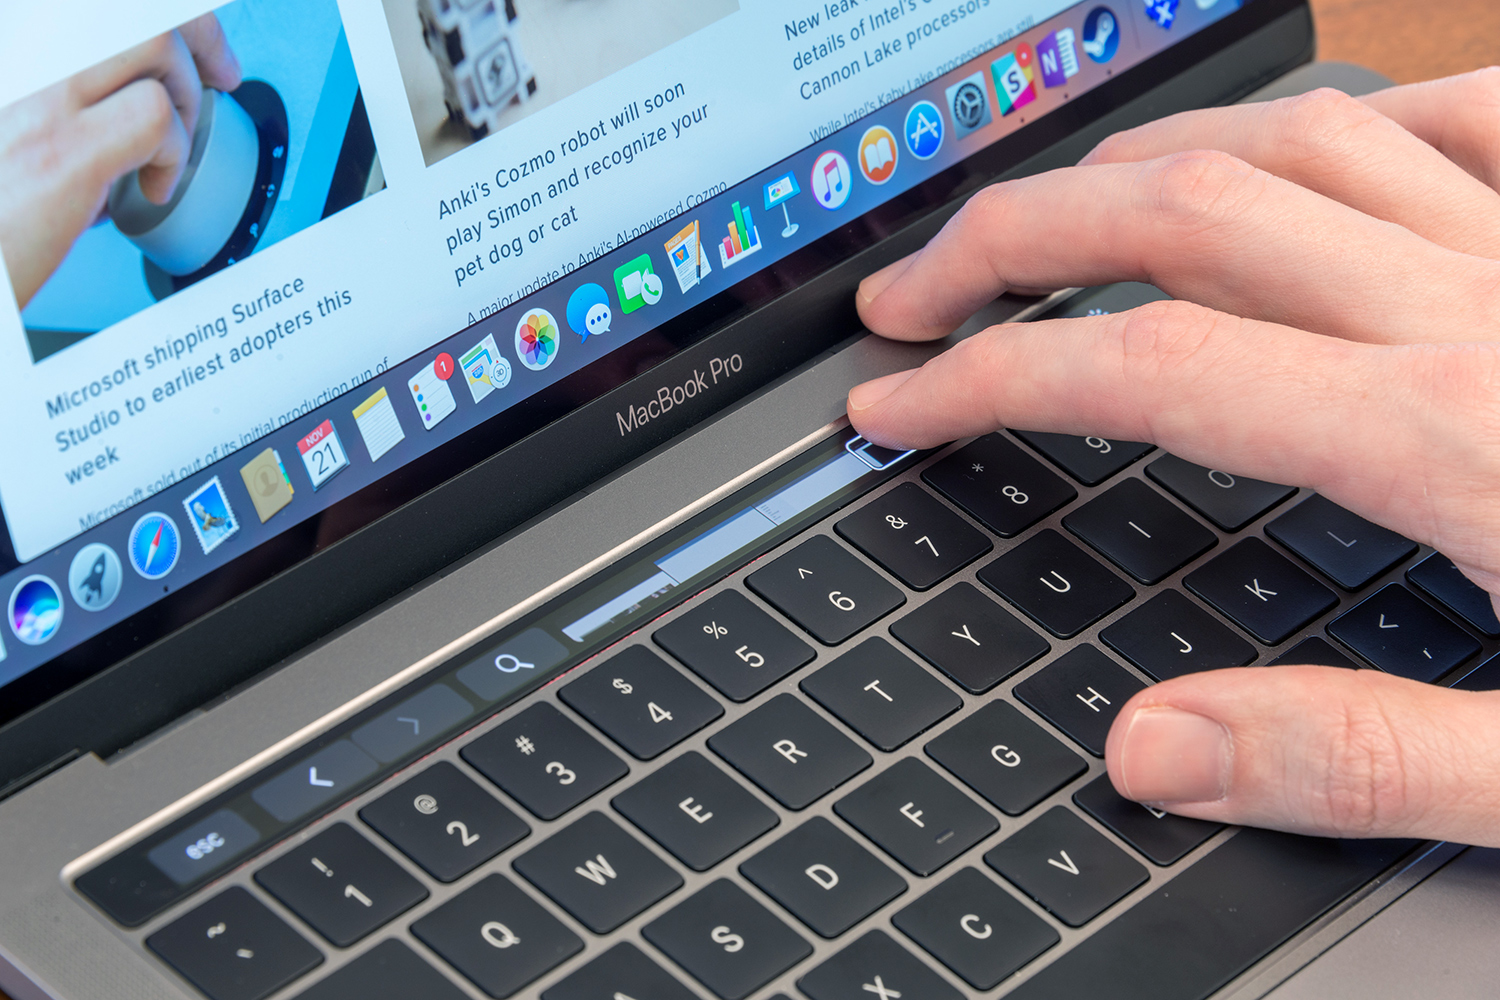 MacBook Pros with Touch Bars banned from law exams